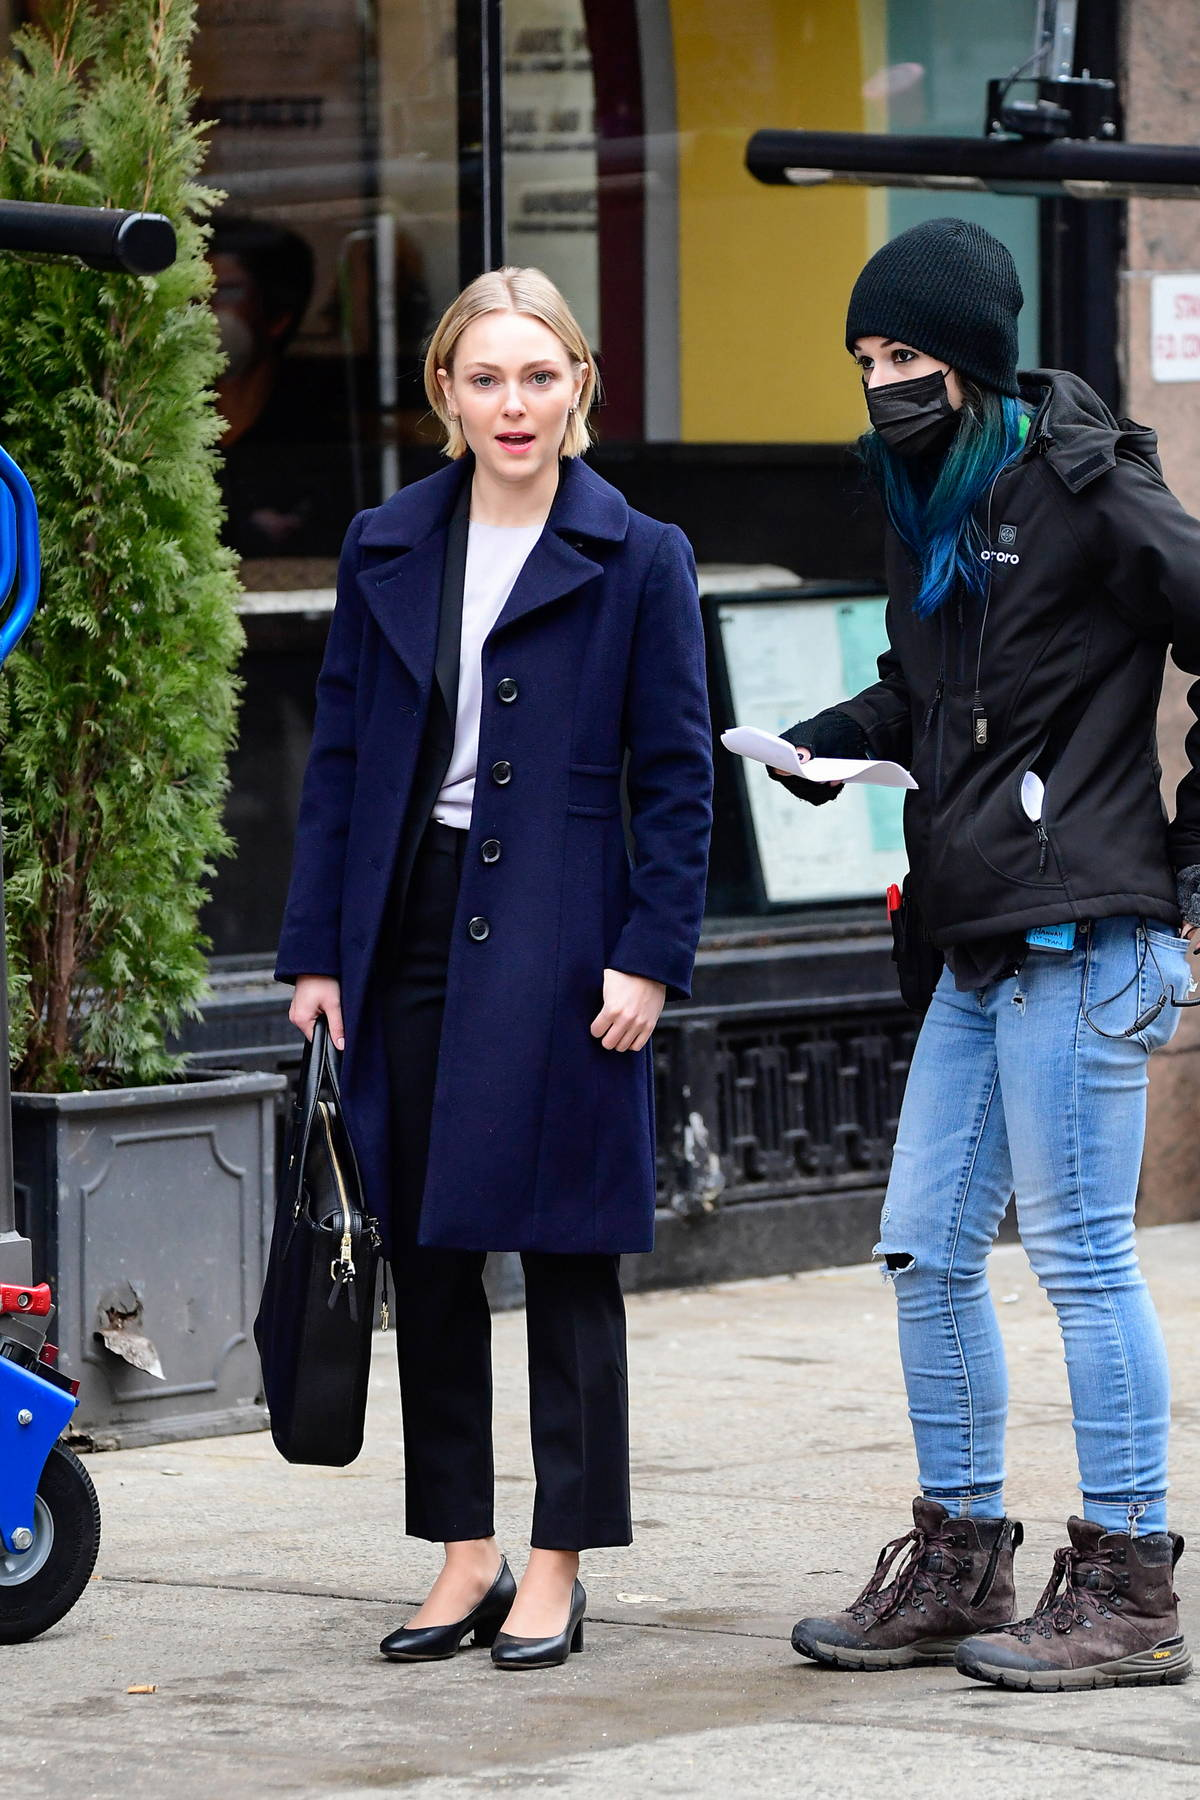 AnnaSophia Robb, Alec Baldwin, and Christian Slater spotted on set of 'Dr Death' in New York City